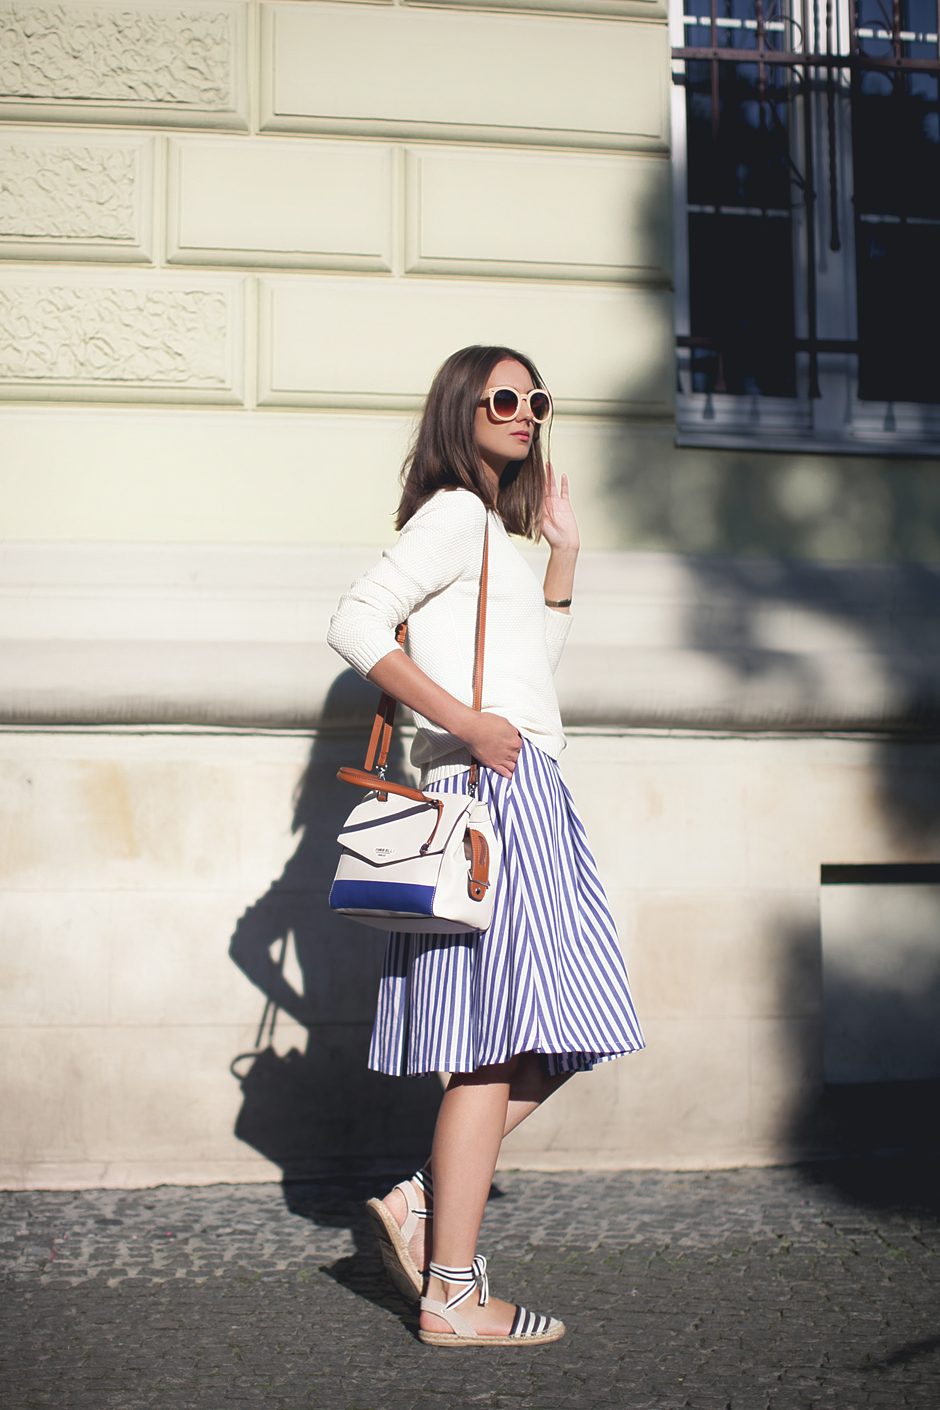 nautical-stripes-midi-skirt-espadrilles-outfit-street-style